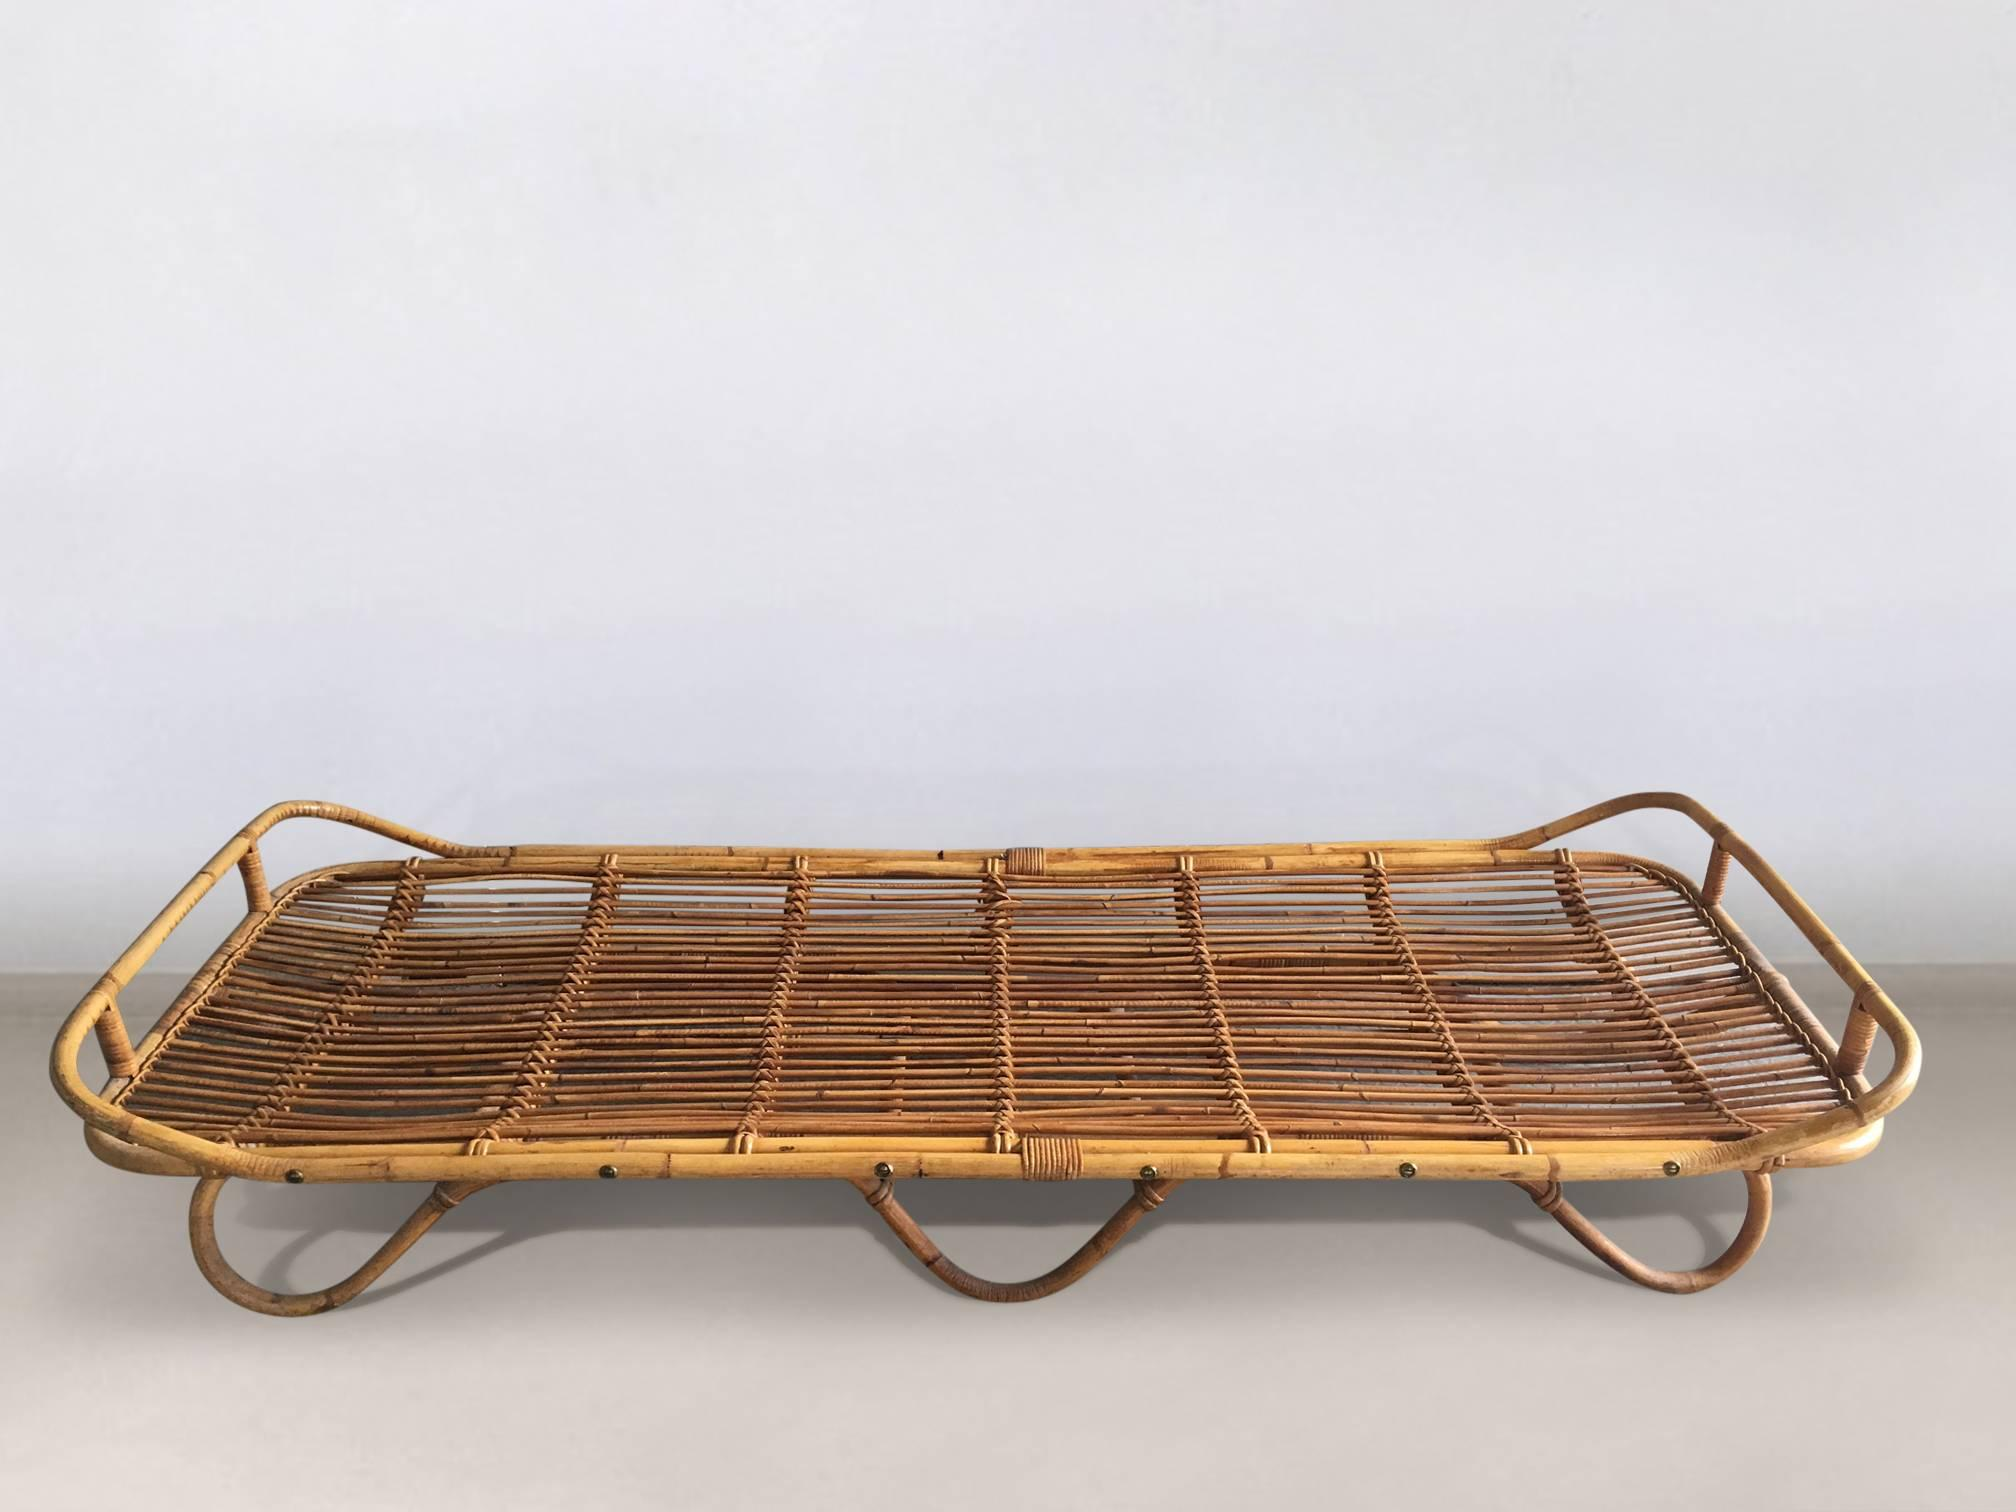 Midcentury Bohemian, Rattan Bed, Daybed, 1950s at 1stdibs